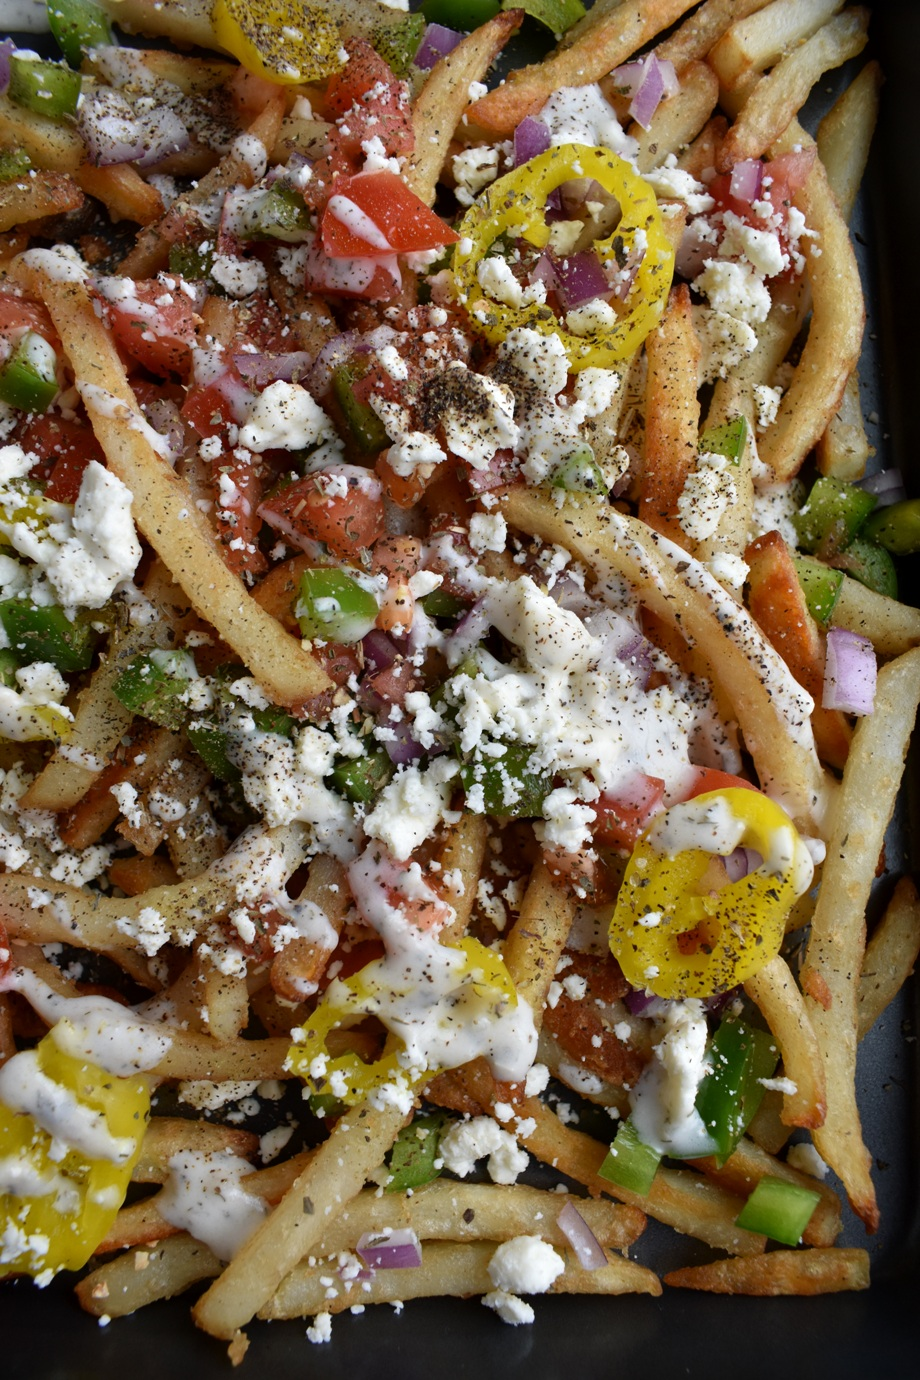 Loaded Greek Fries are ready in 25-minutes and topped with feta cheese, tomato, green pepper, red onion, banana peppers, drizzled in feta dill dressing and sprinkles in Italian spices for an easy appetizer, side dish or snack.